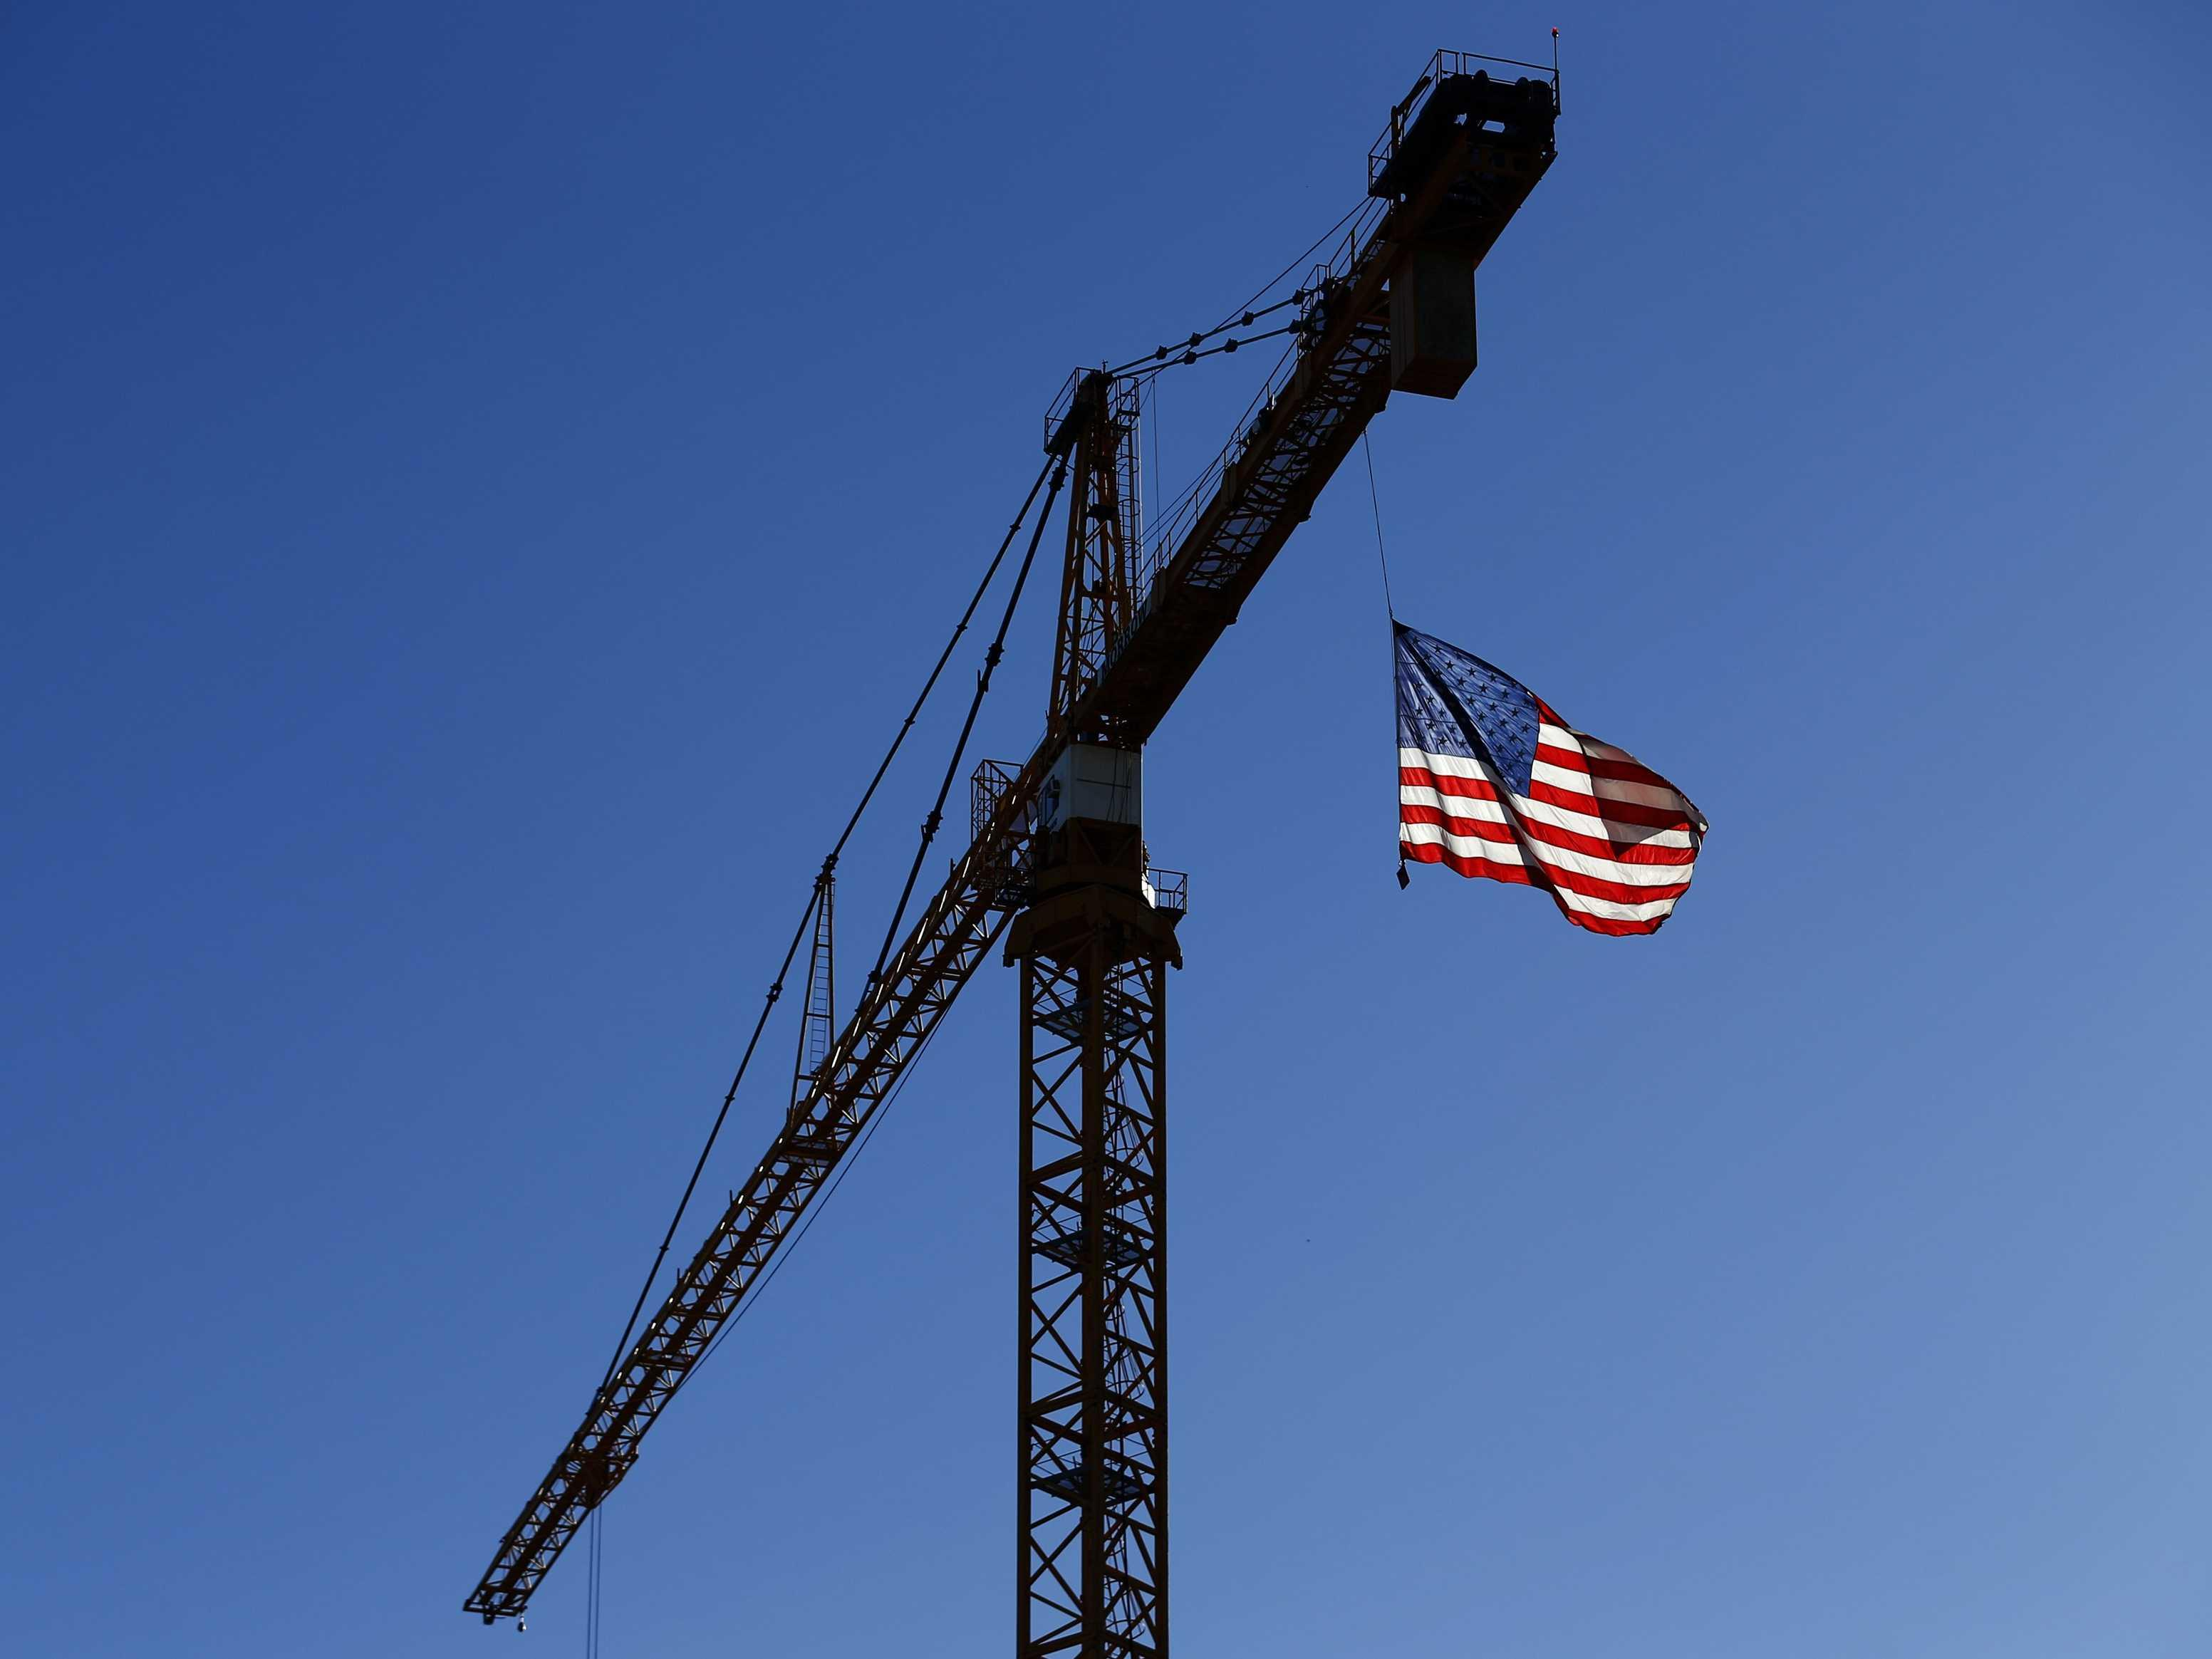 There's one bright spot in the US economy that keeps getting better